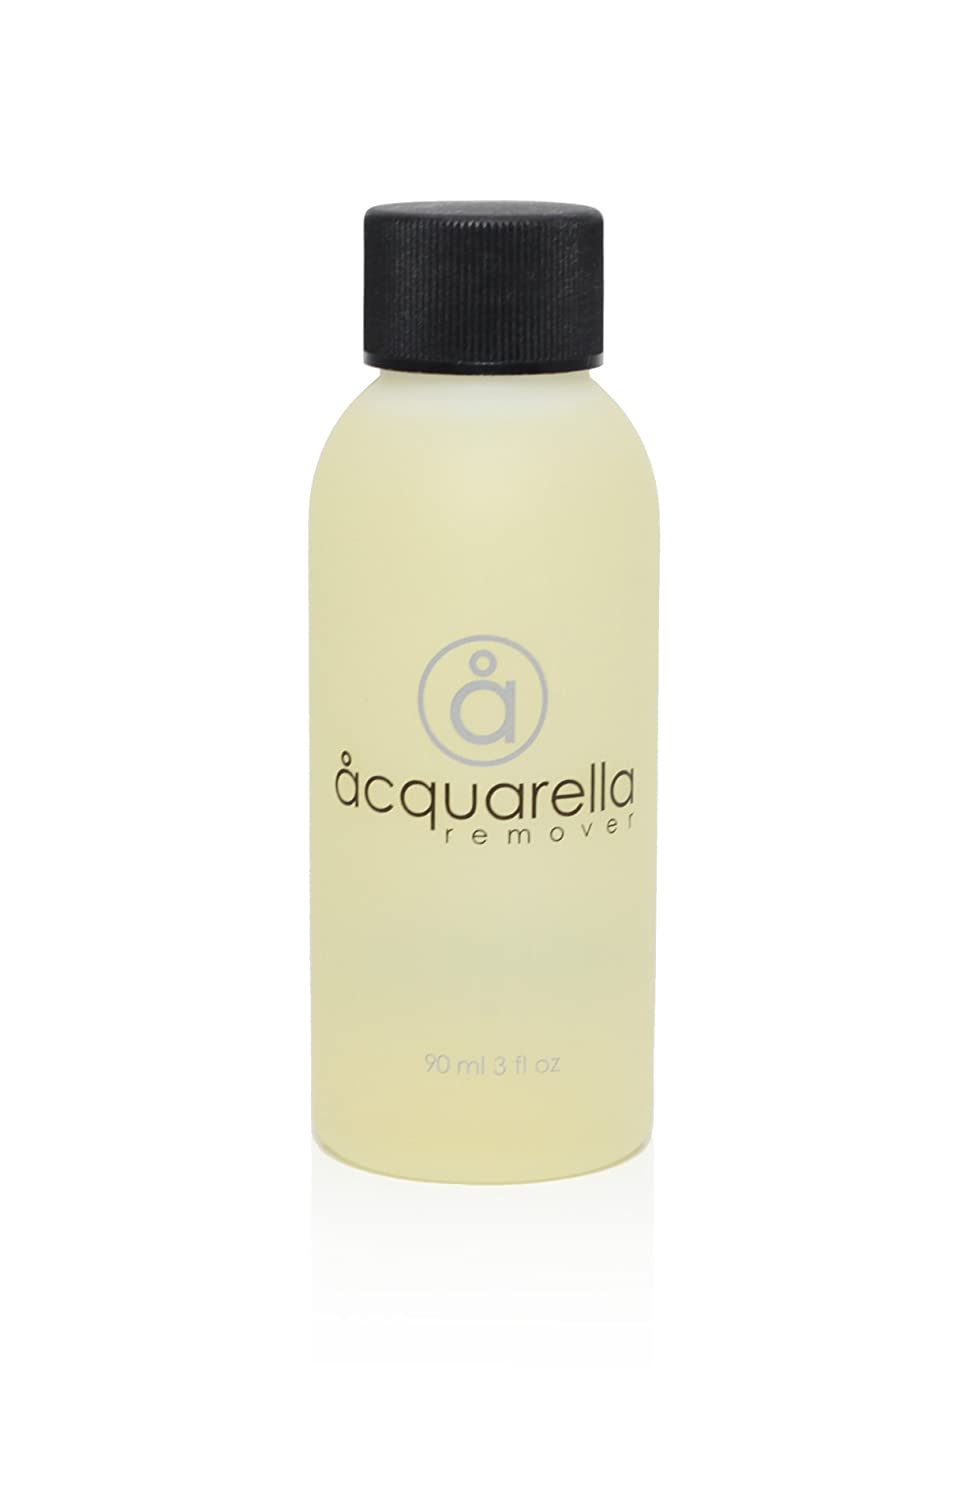 Amazon.com : Acquarella Remover, Travel : Nail Polish Removers : Beauty